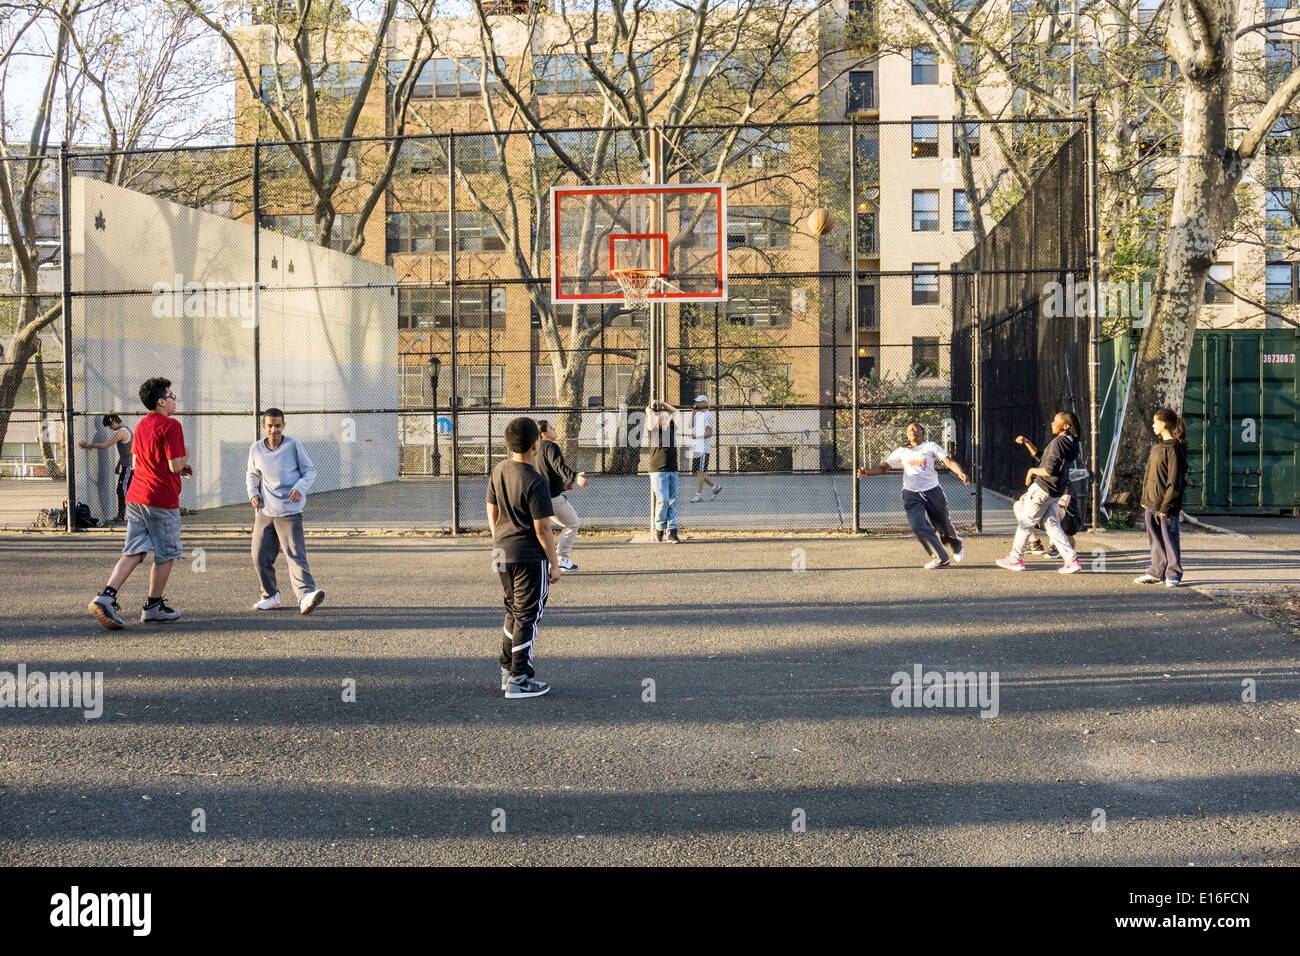 teen black girl aims for the basket in a good natured unisex street basketball game in DeWitt Clinton park Hells Kitchen - Stock Image